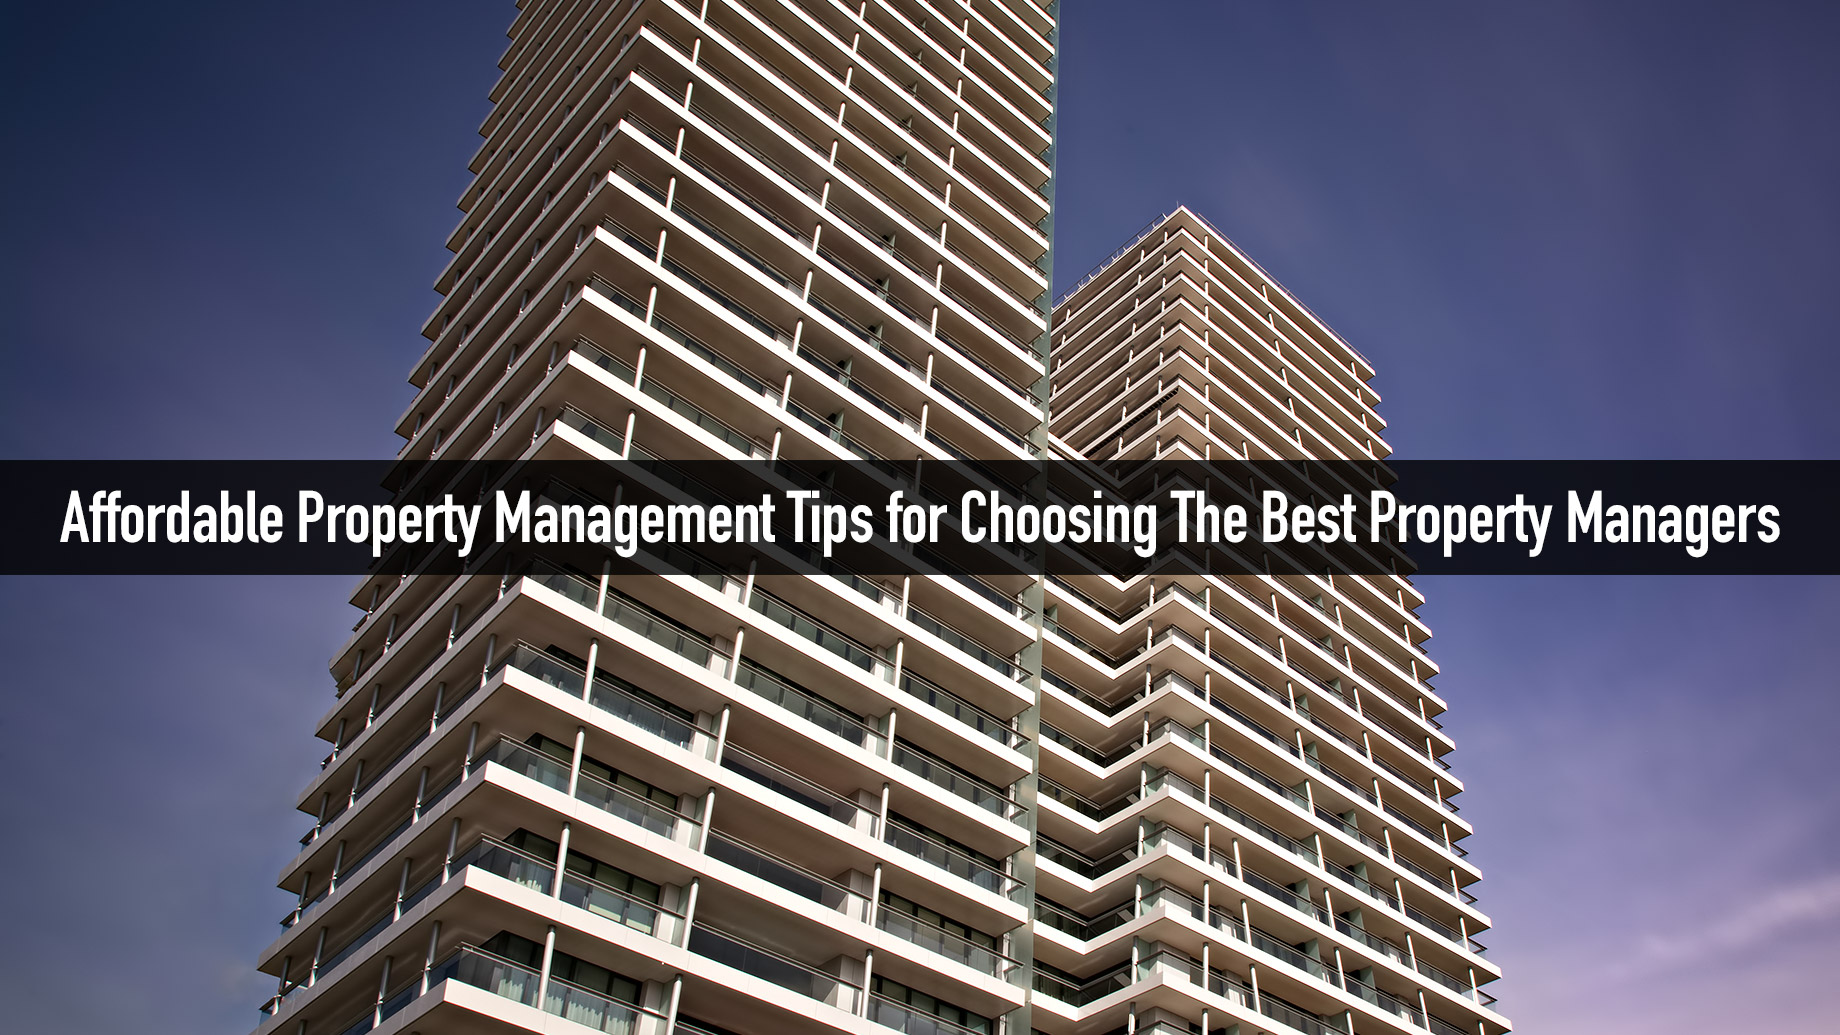 Affordable Property Management Tips for Choosing The Best Property Managers